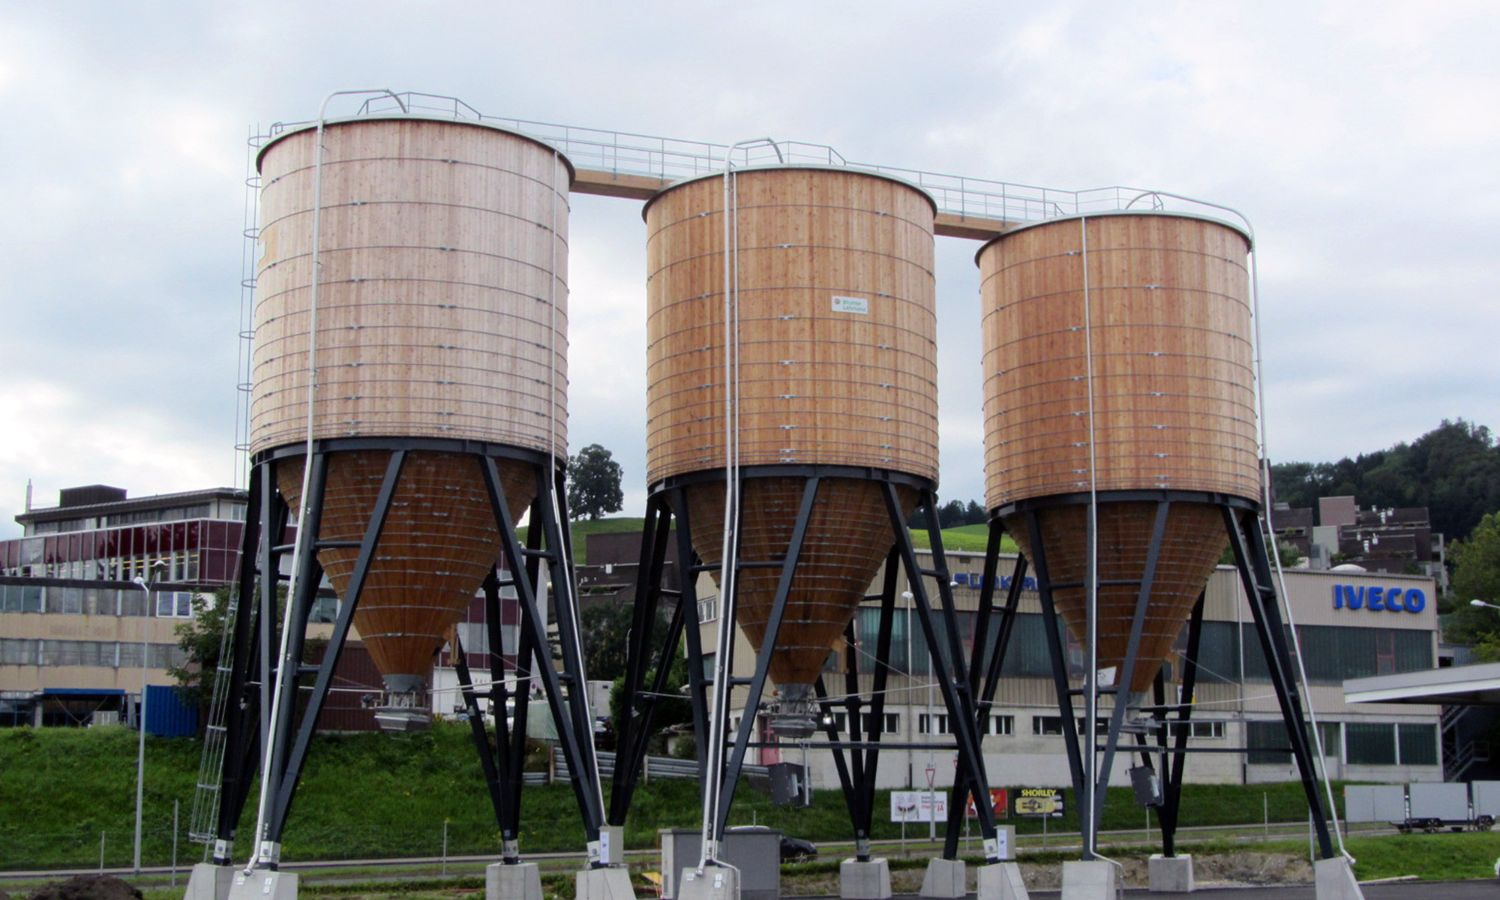 Three round timber silos in a line, connected by a roof crossover, St Gallen Neudorf